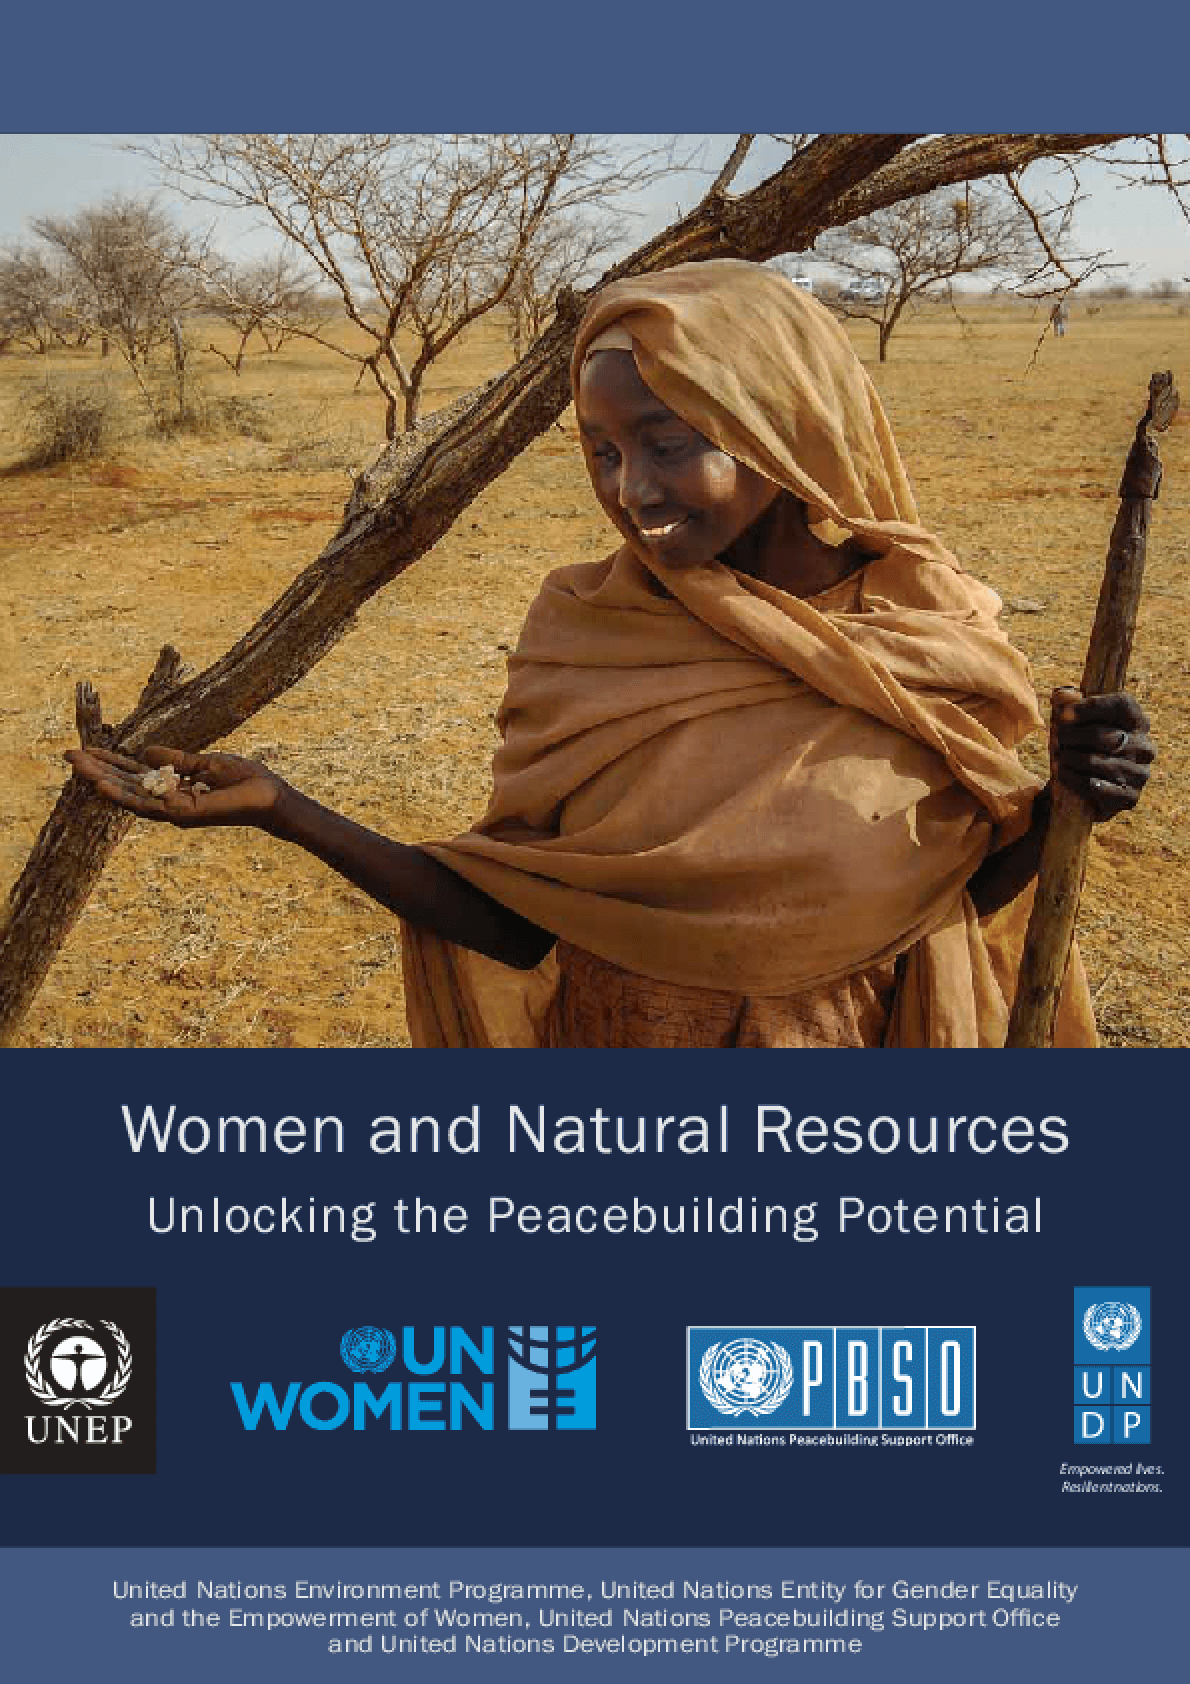 Women and Natural Resources Unlocking the Peacebuilding Potential